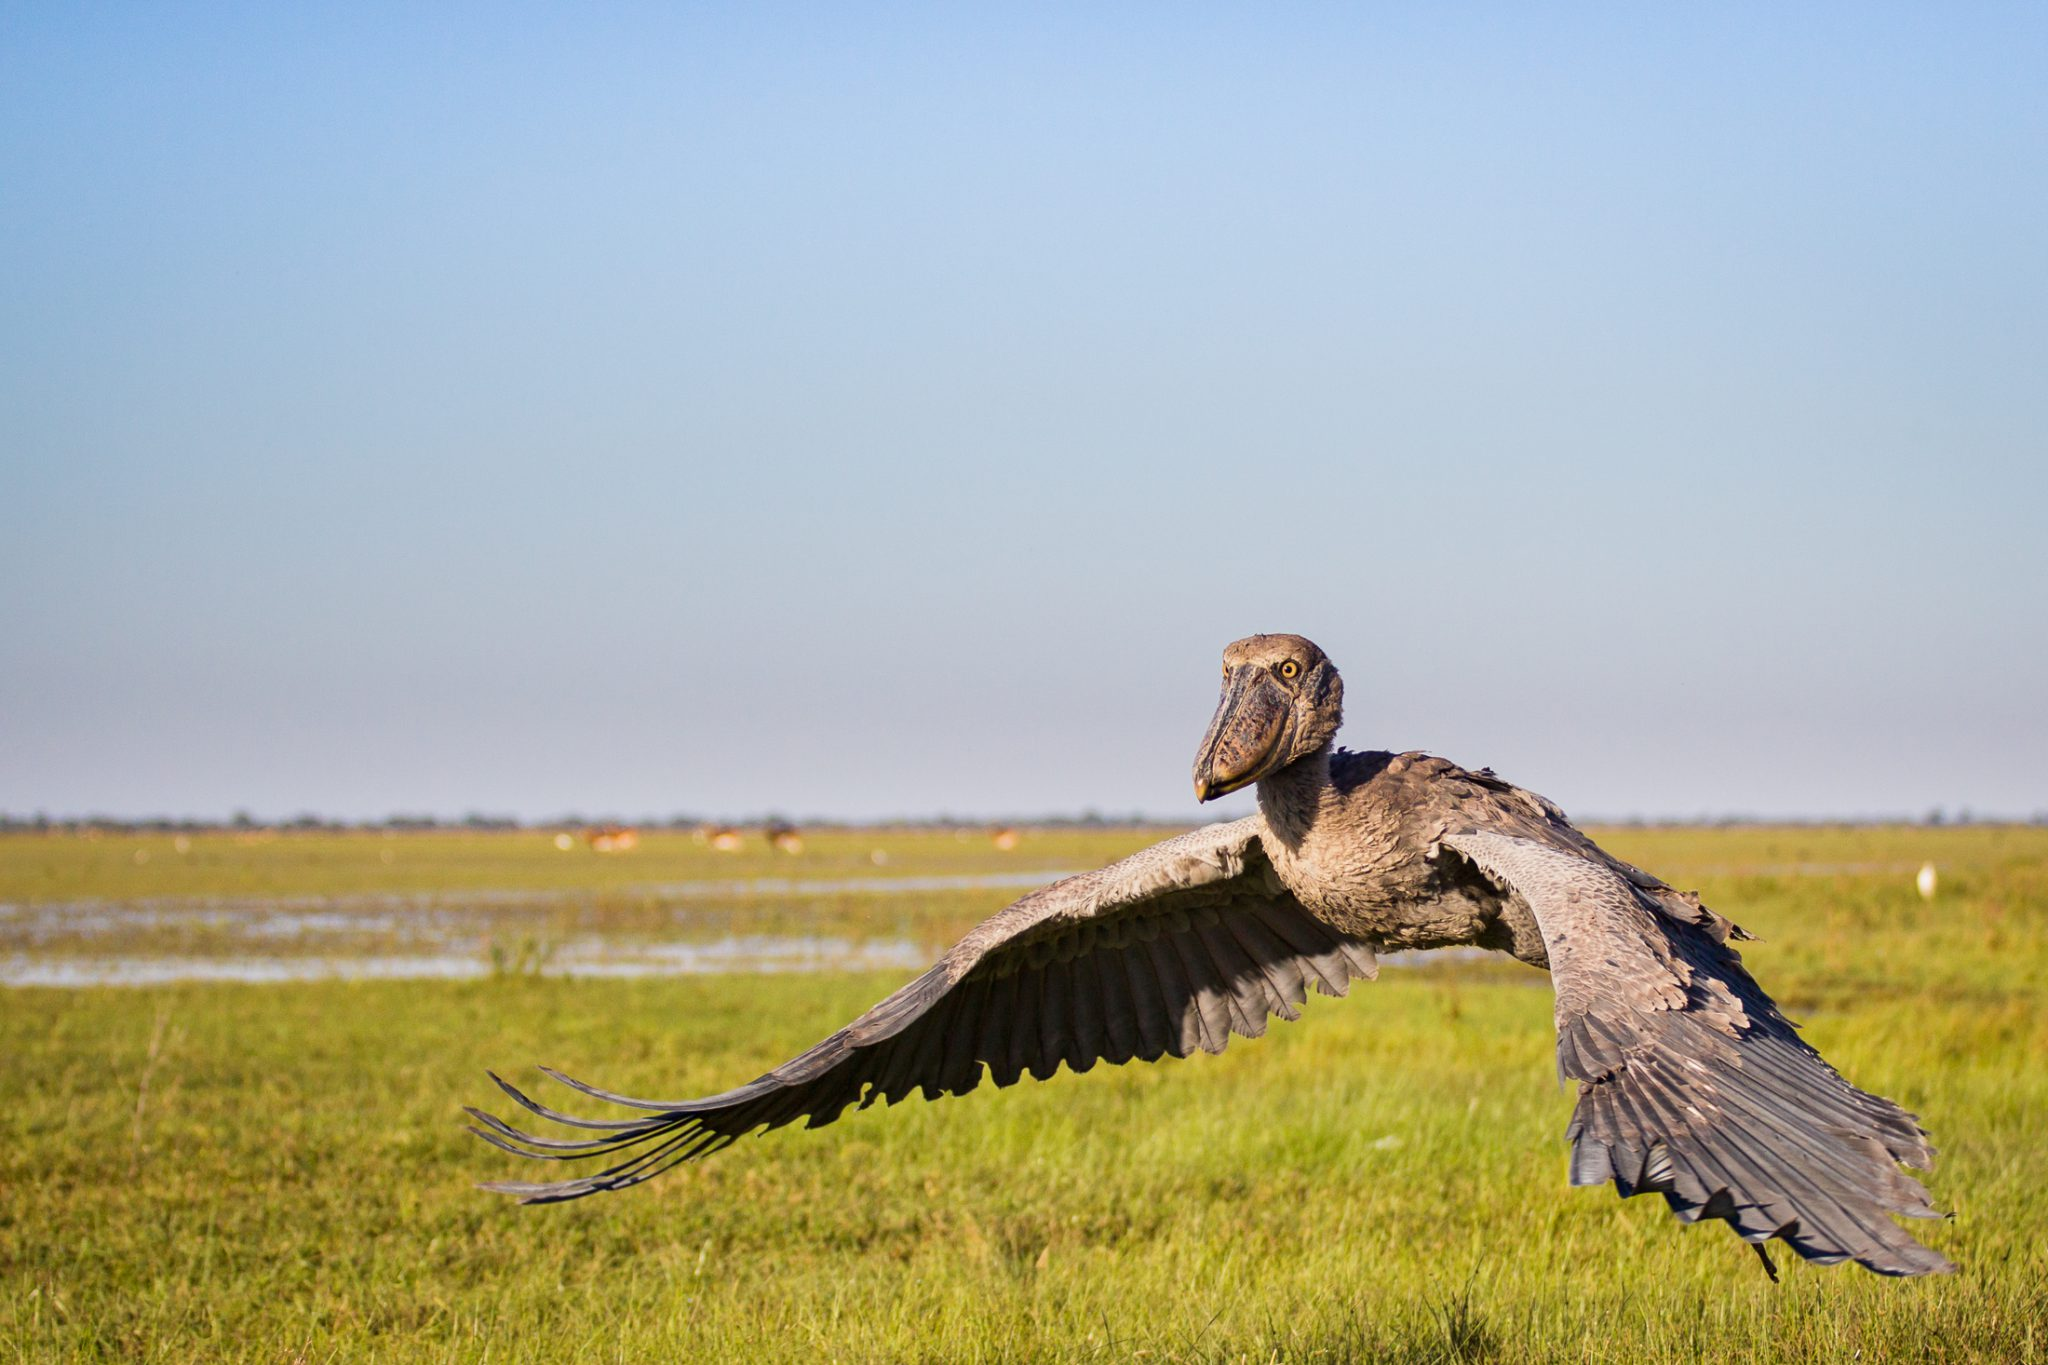 Featured in Audobon Magazine's top 100 bird photos of 2012